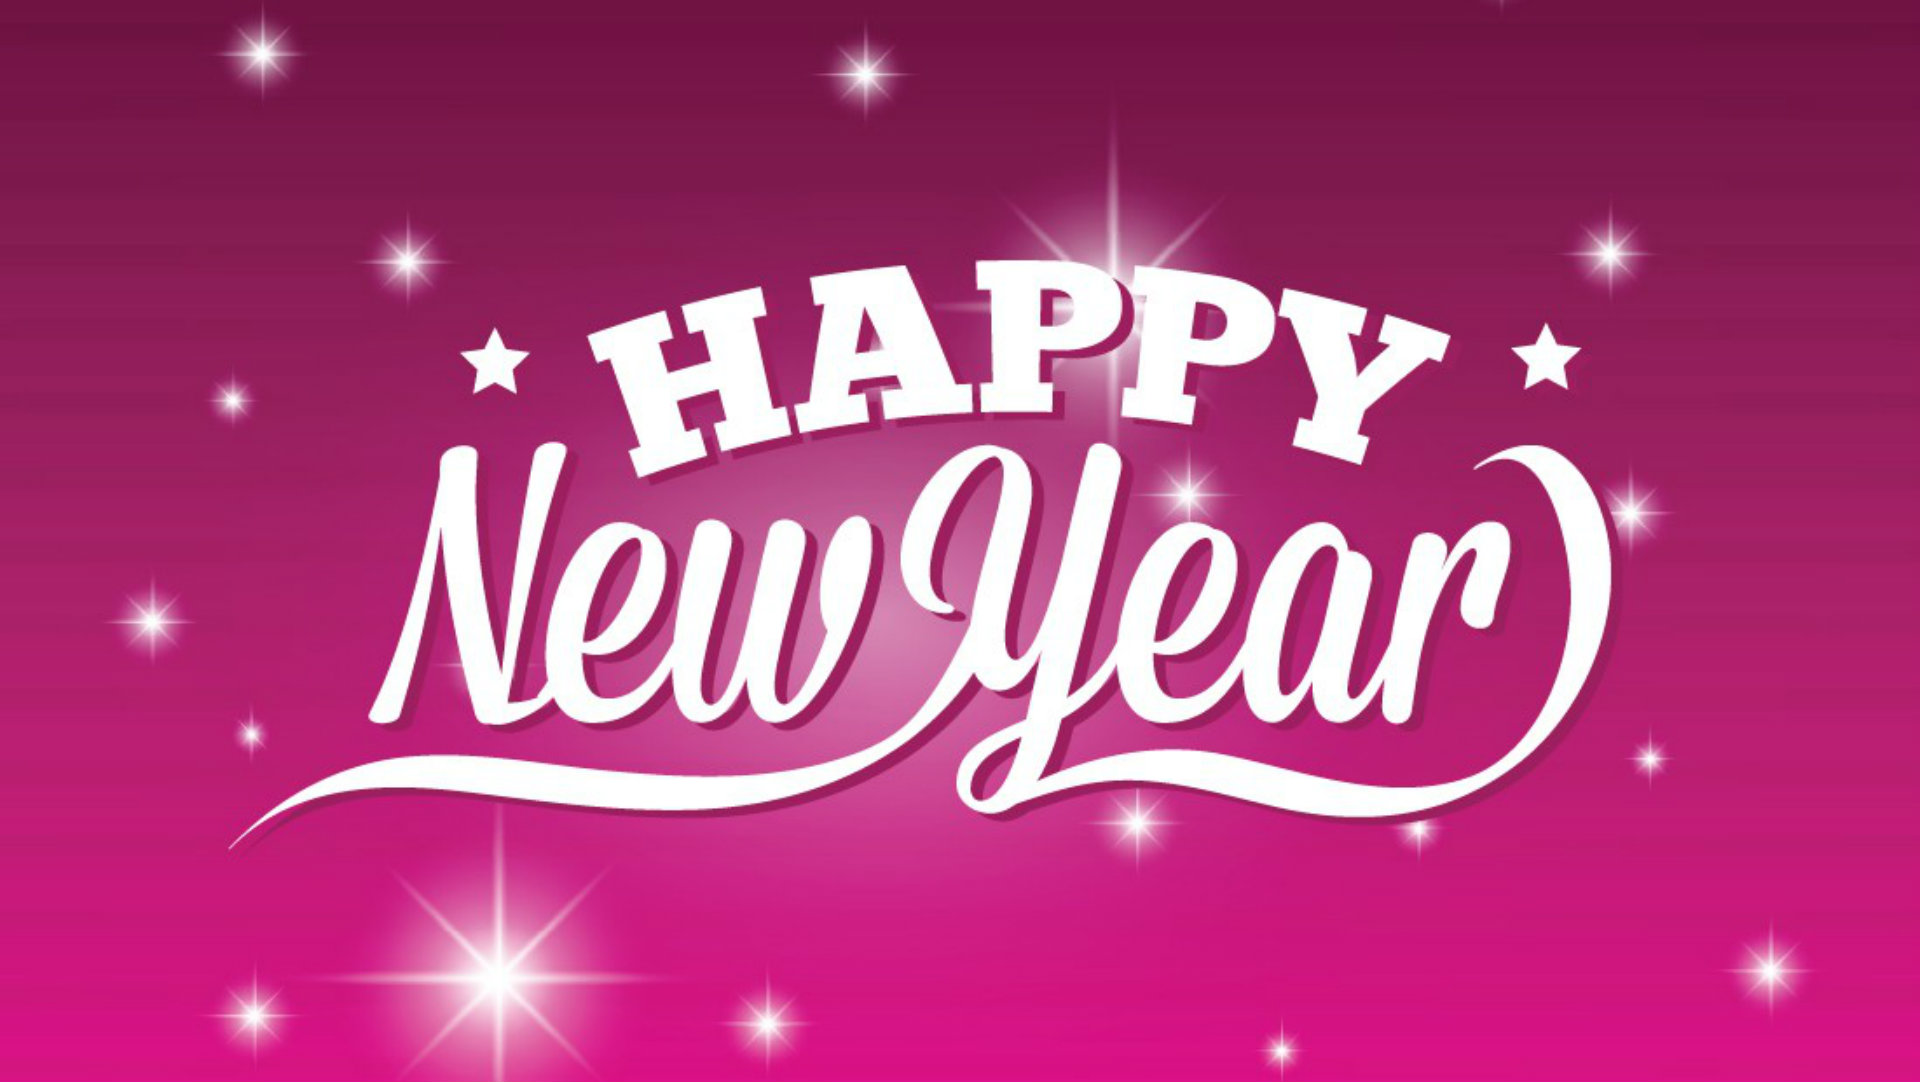 New year wallpapers and hd images happy wishes happy new year 2015 wallpaper hd m4hsunfo